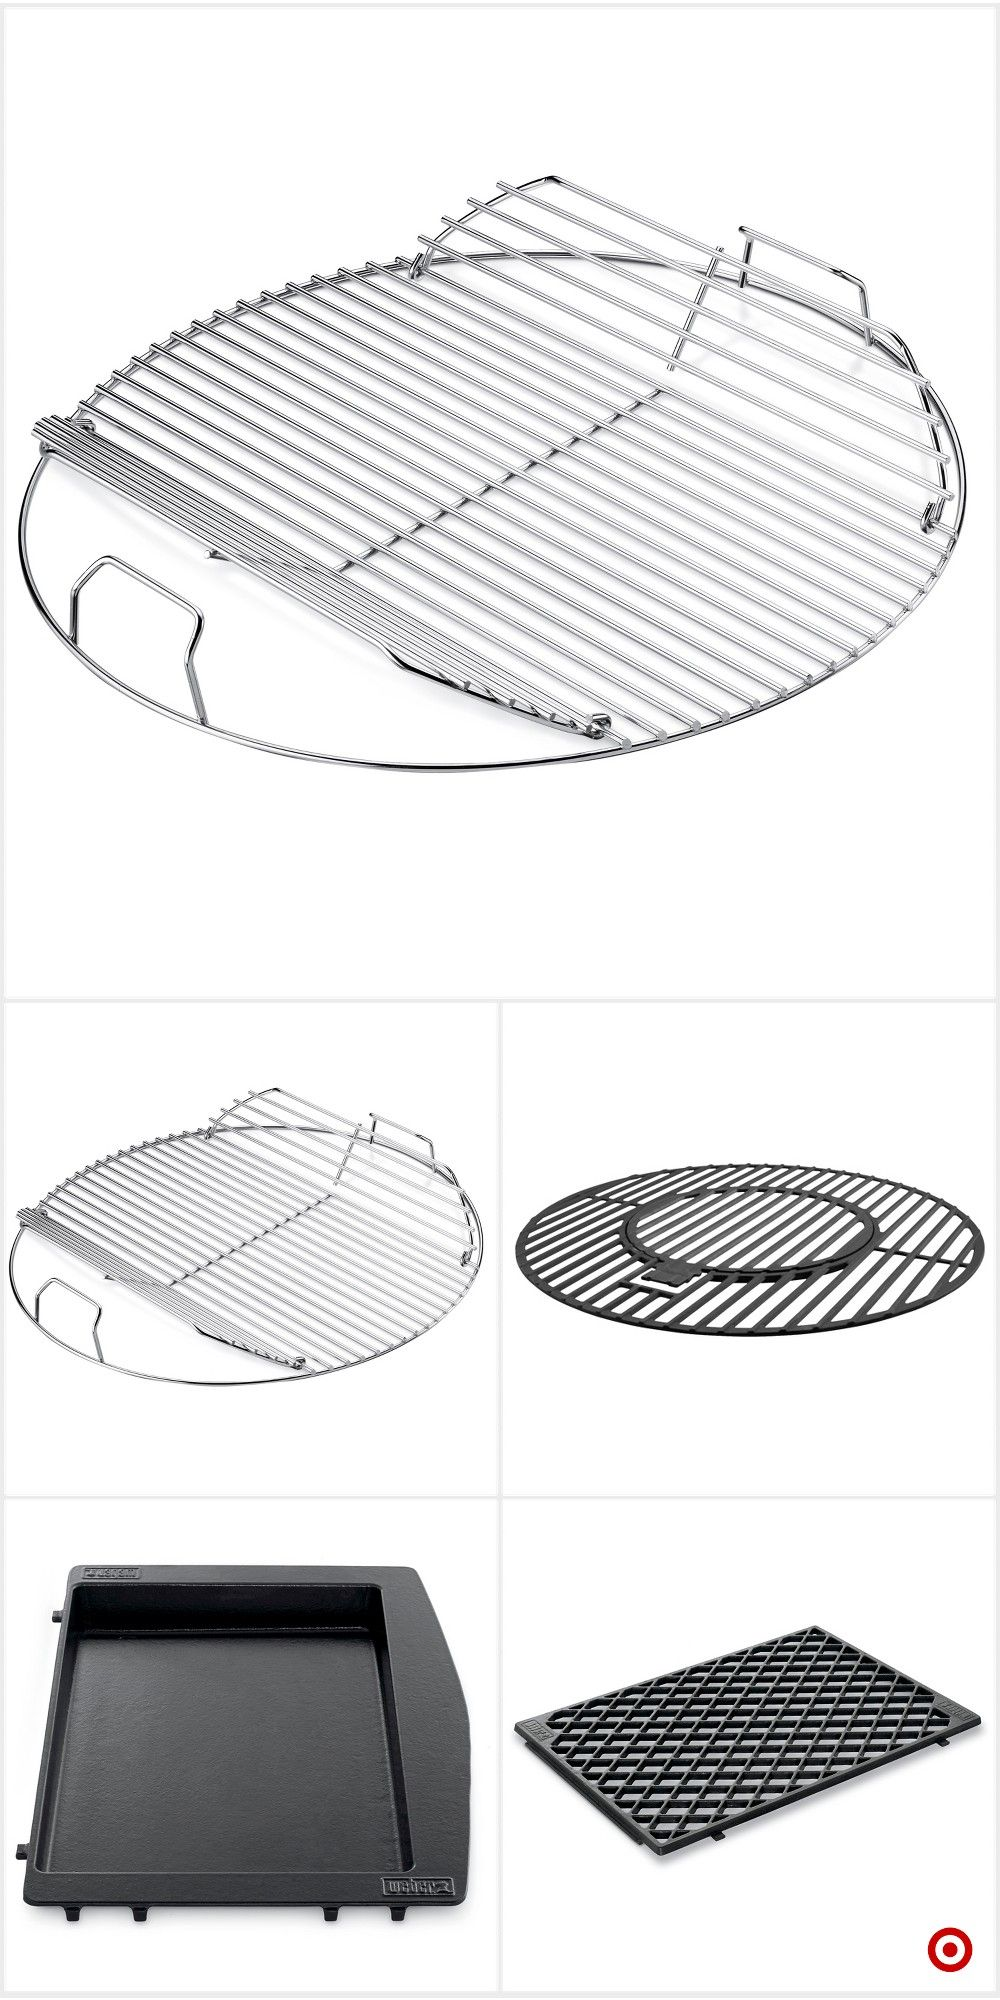 Luggage Rack Target Captivating Shop Target For Grill Grate You Will Love At Great Low Pricesfree Design Ideas